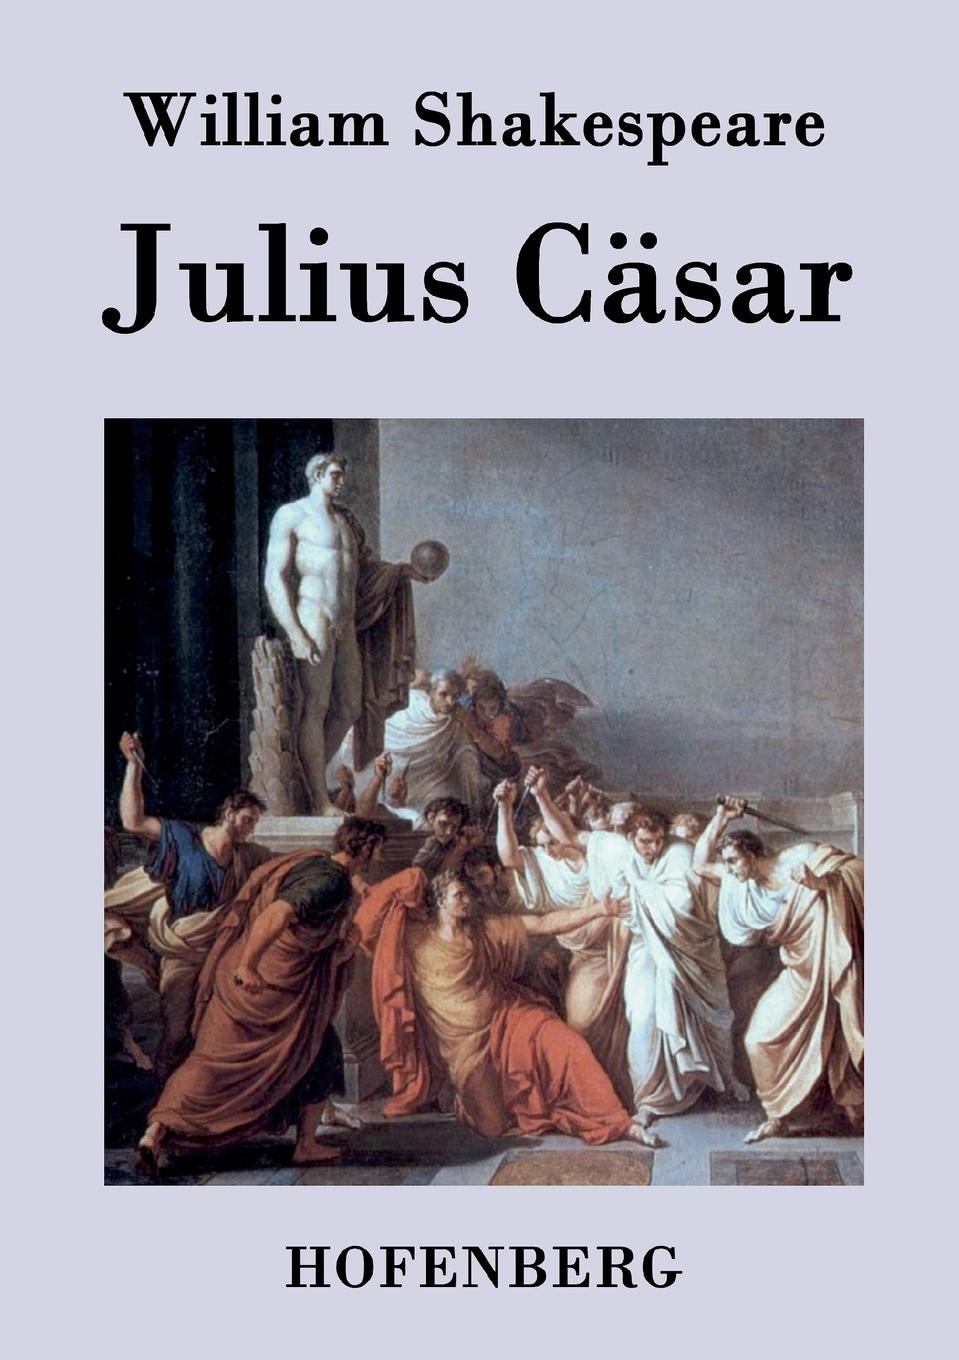 William Shakespeare Julius Casar william shakespeare julius casar